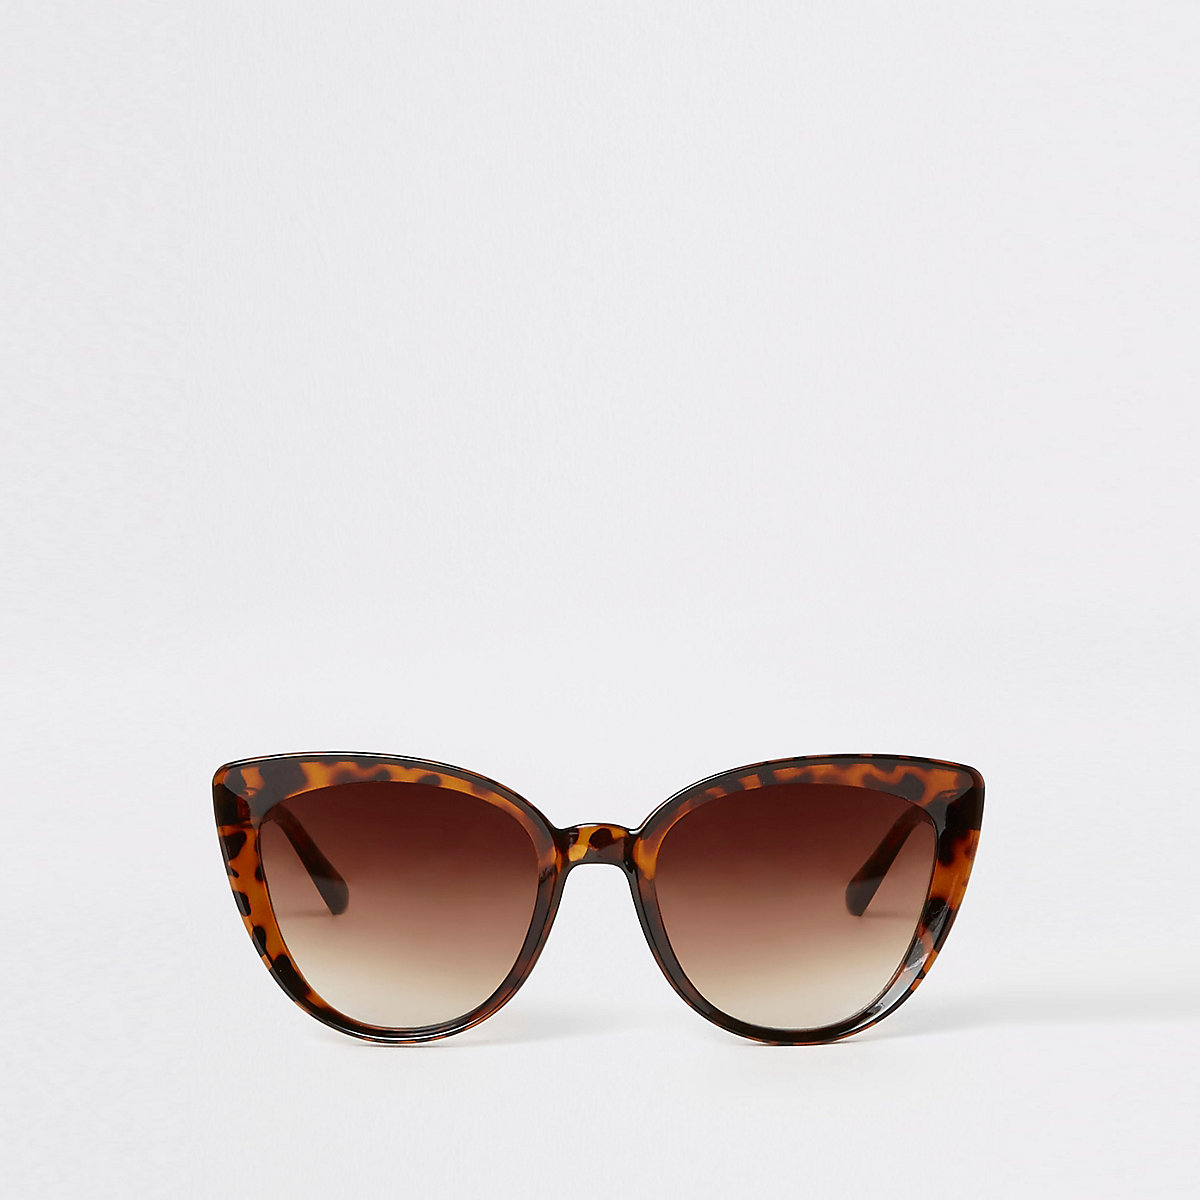 Brown tortoiseshell cat eye sunglasses